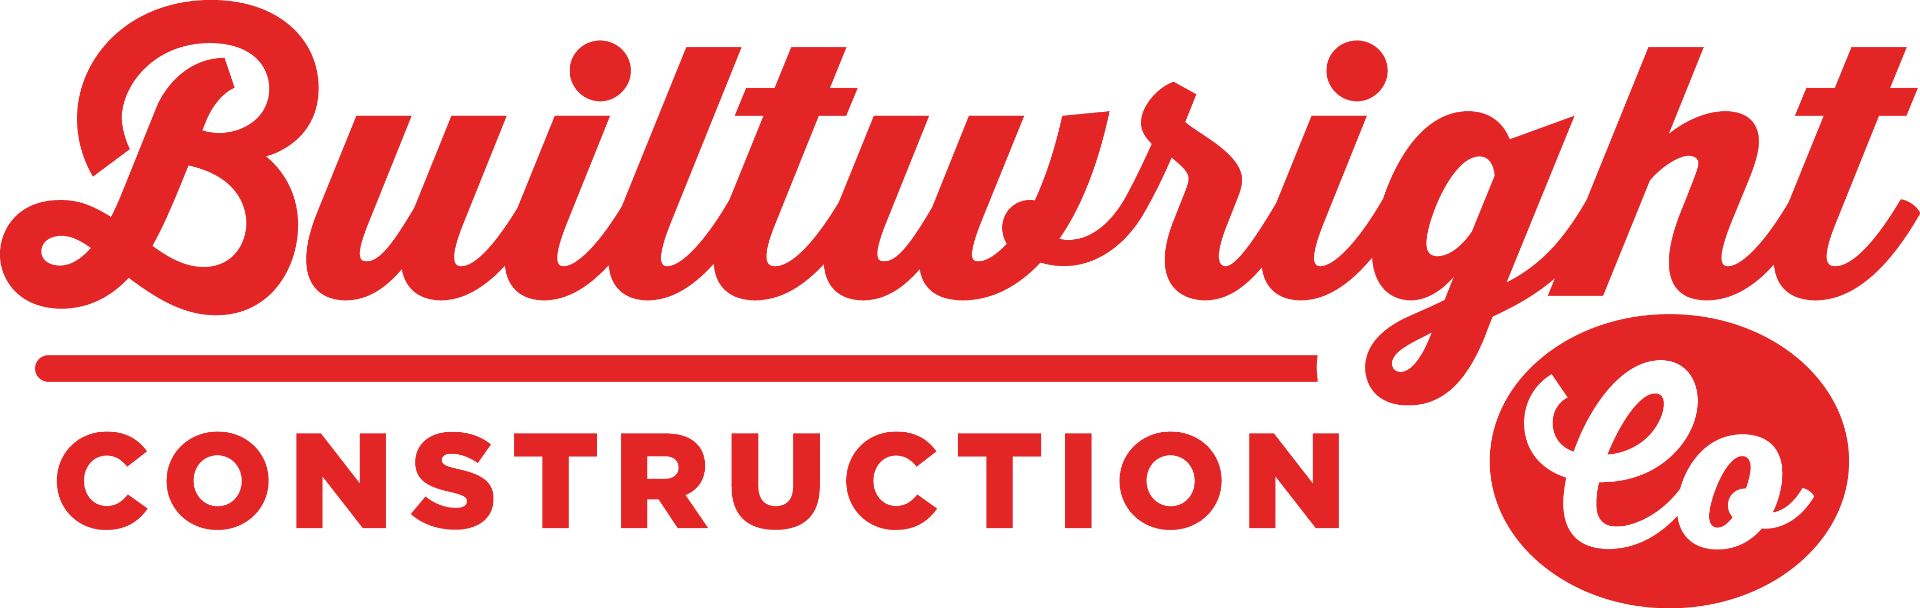 Builtwright Construction Co.